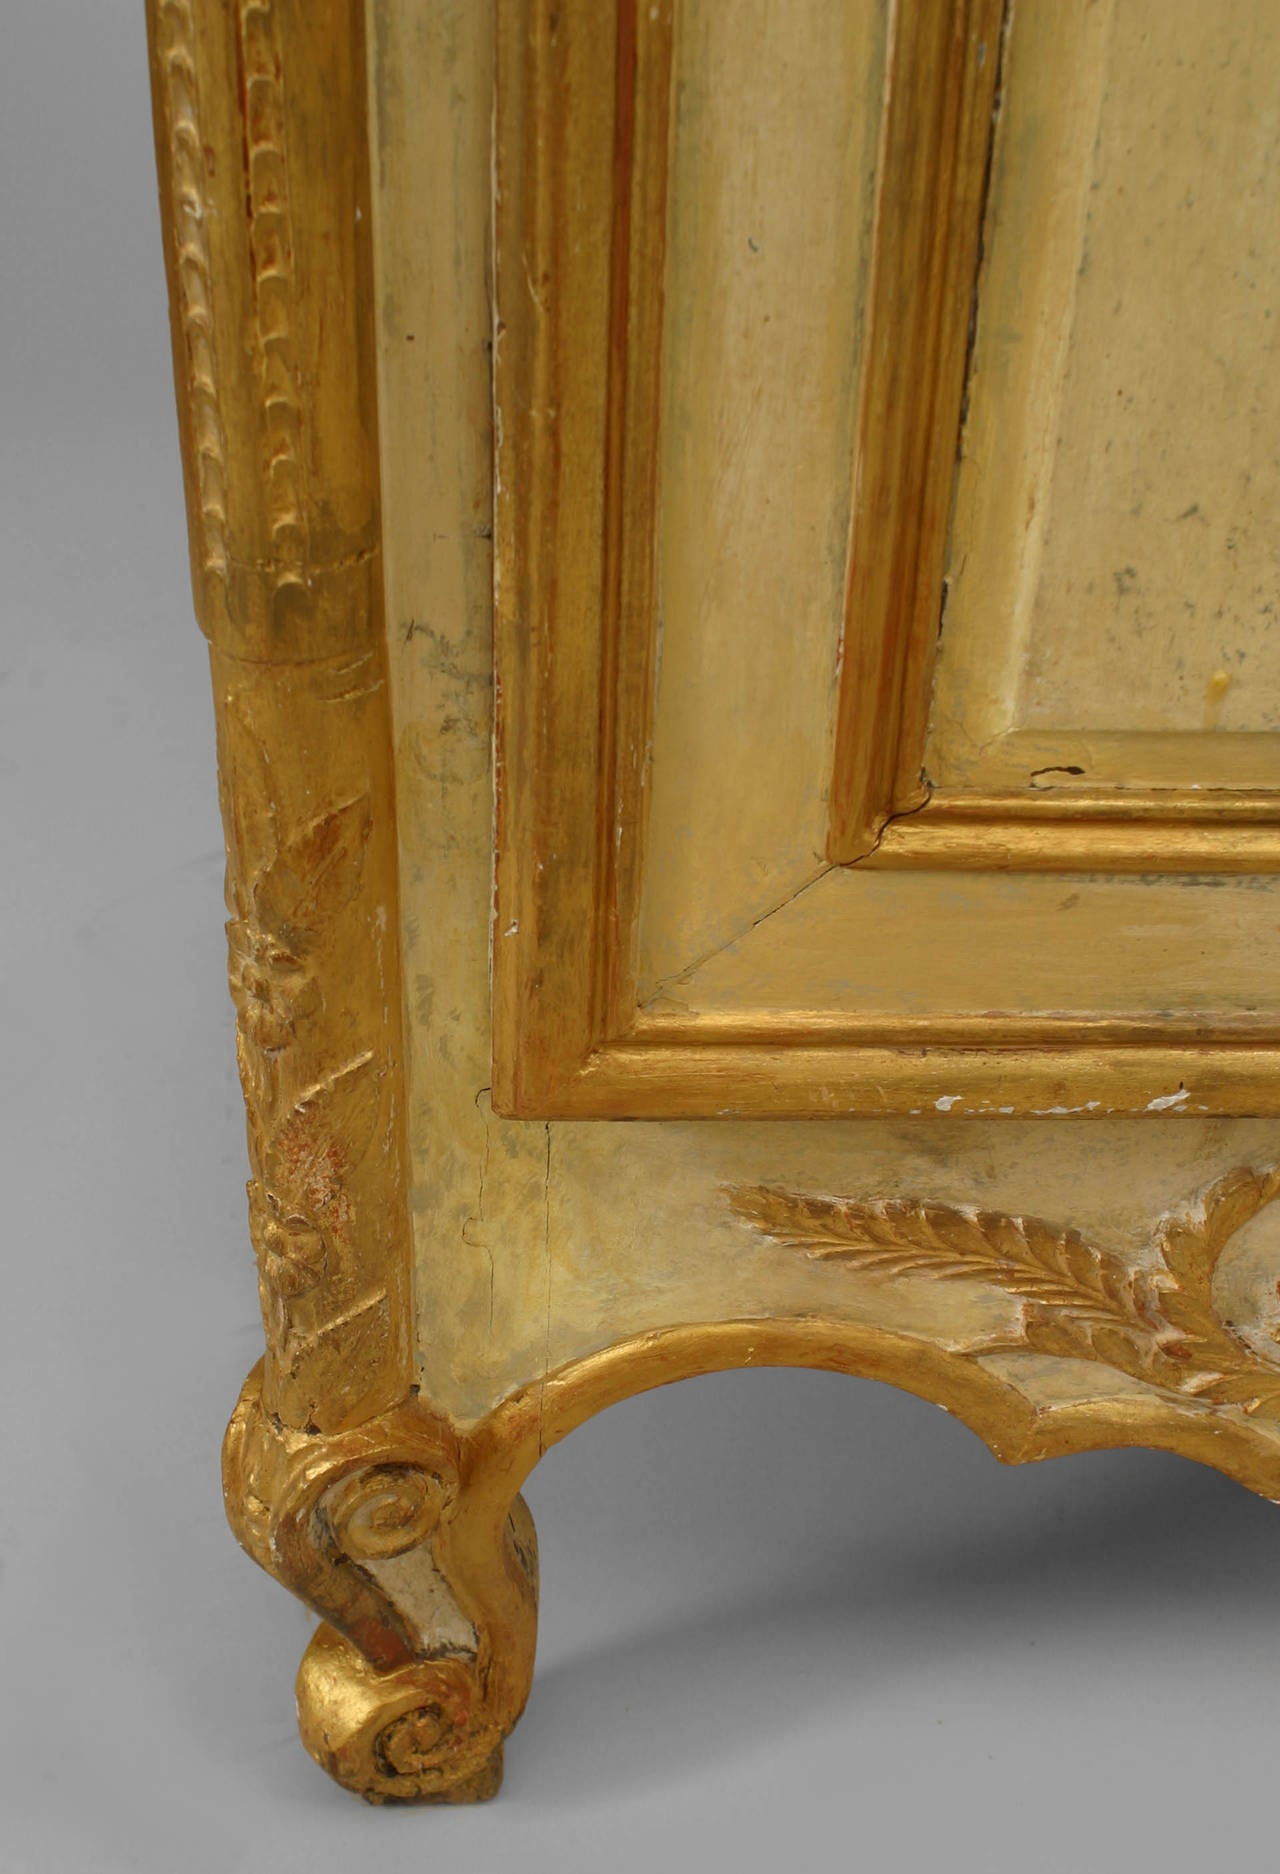 18th Century Late 18th or Early 19th Century Italian Gilt-Trimmed Commode For Sale